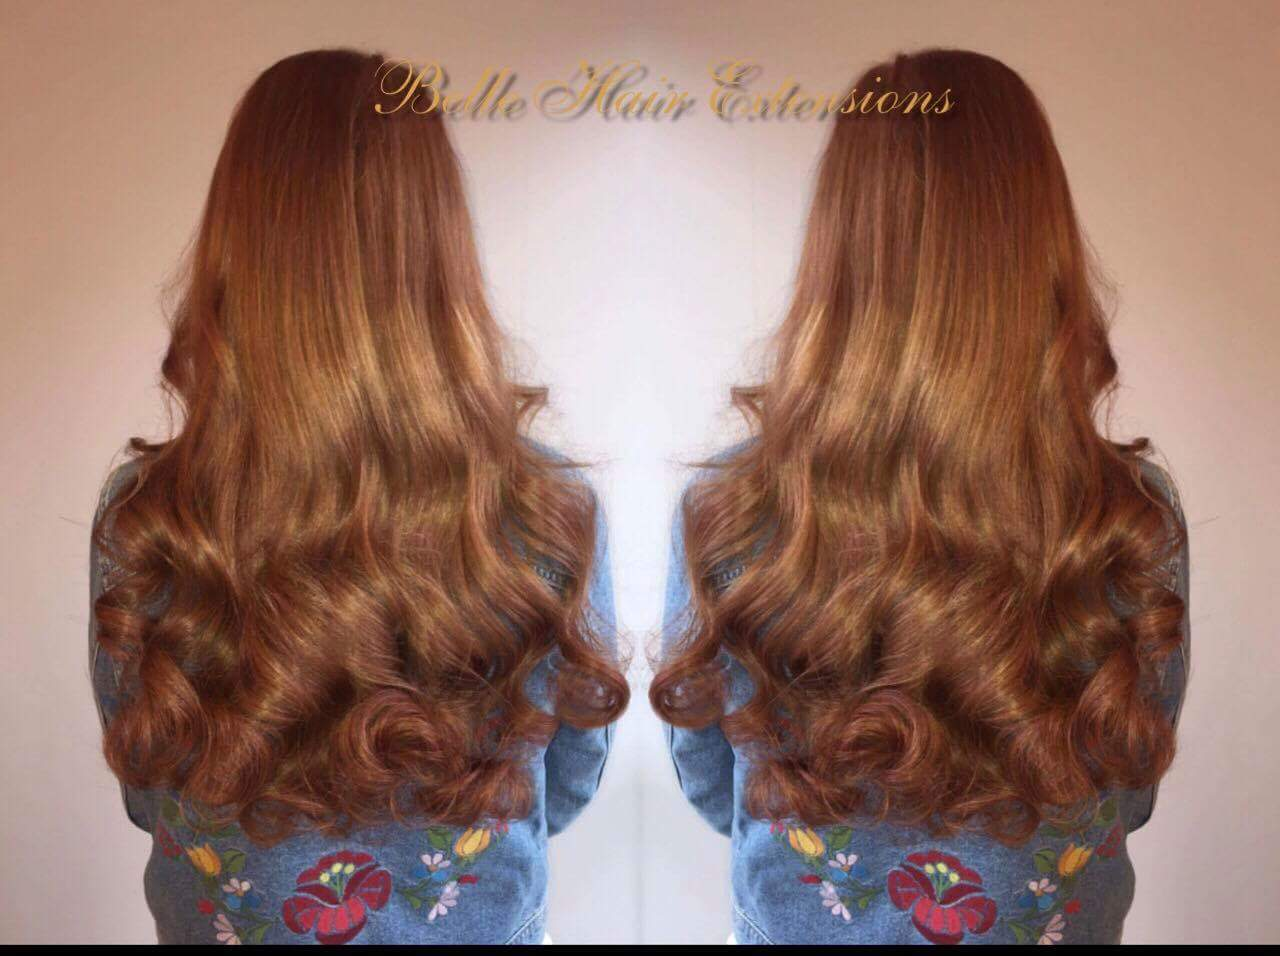 Belle Hair Extensions Pearls Poison